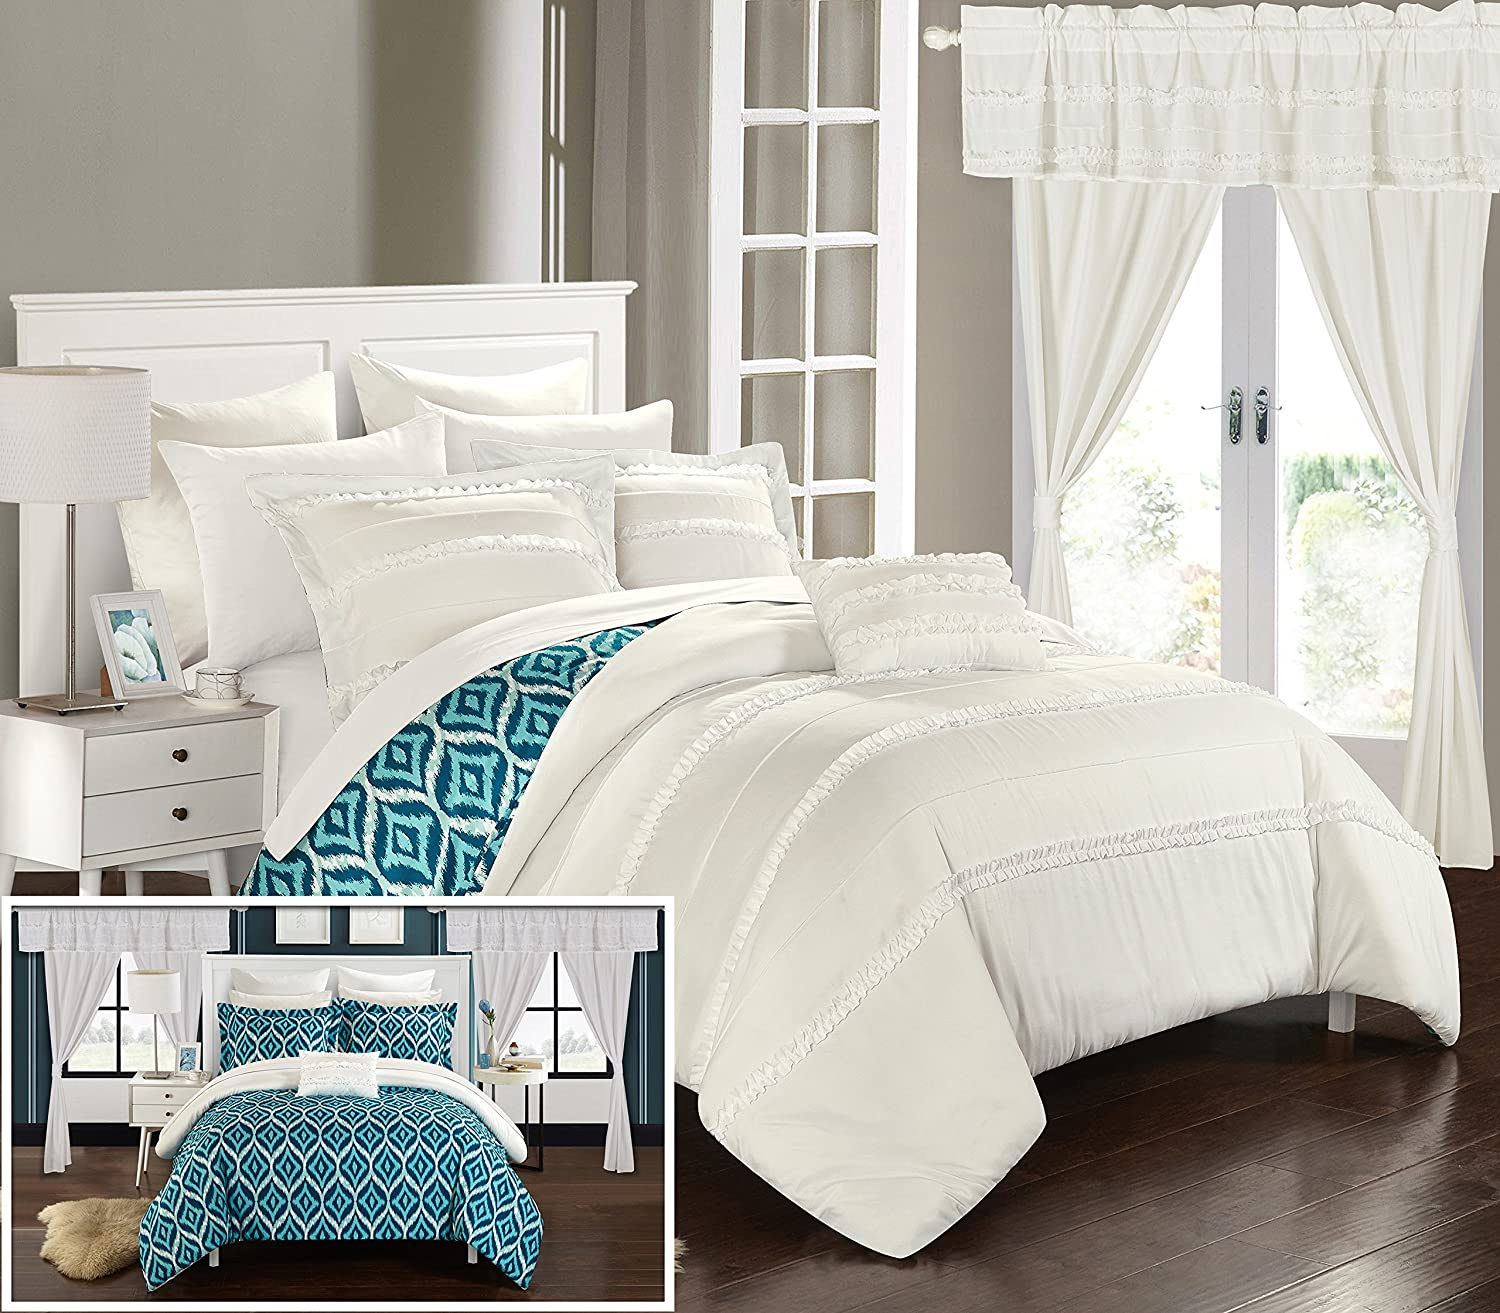 Chic Home Adina 20 Piece Reversible Comforter Complete Bed in a Bag, Queen, White